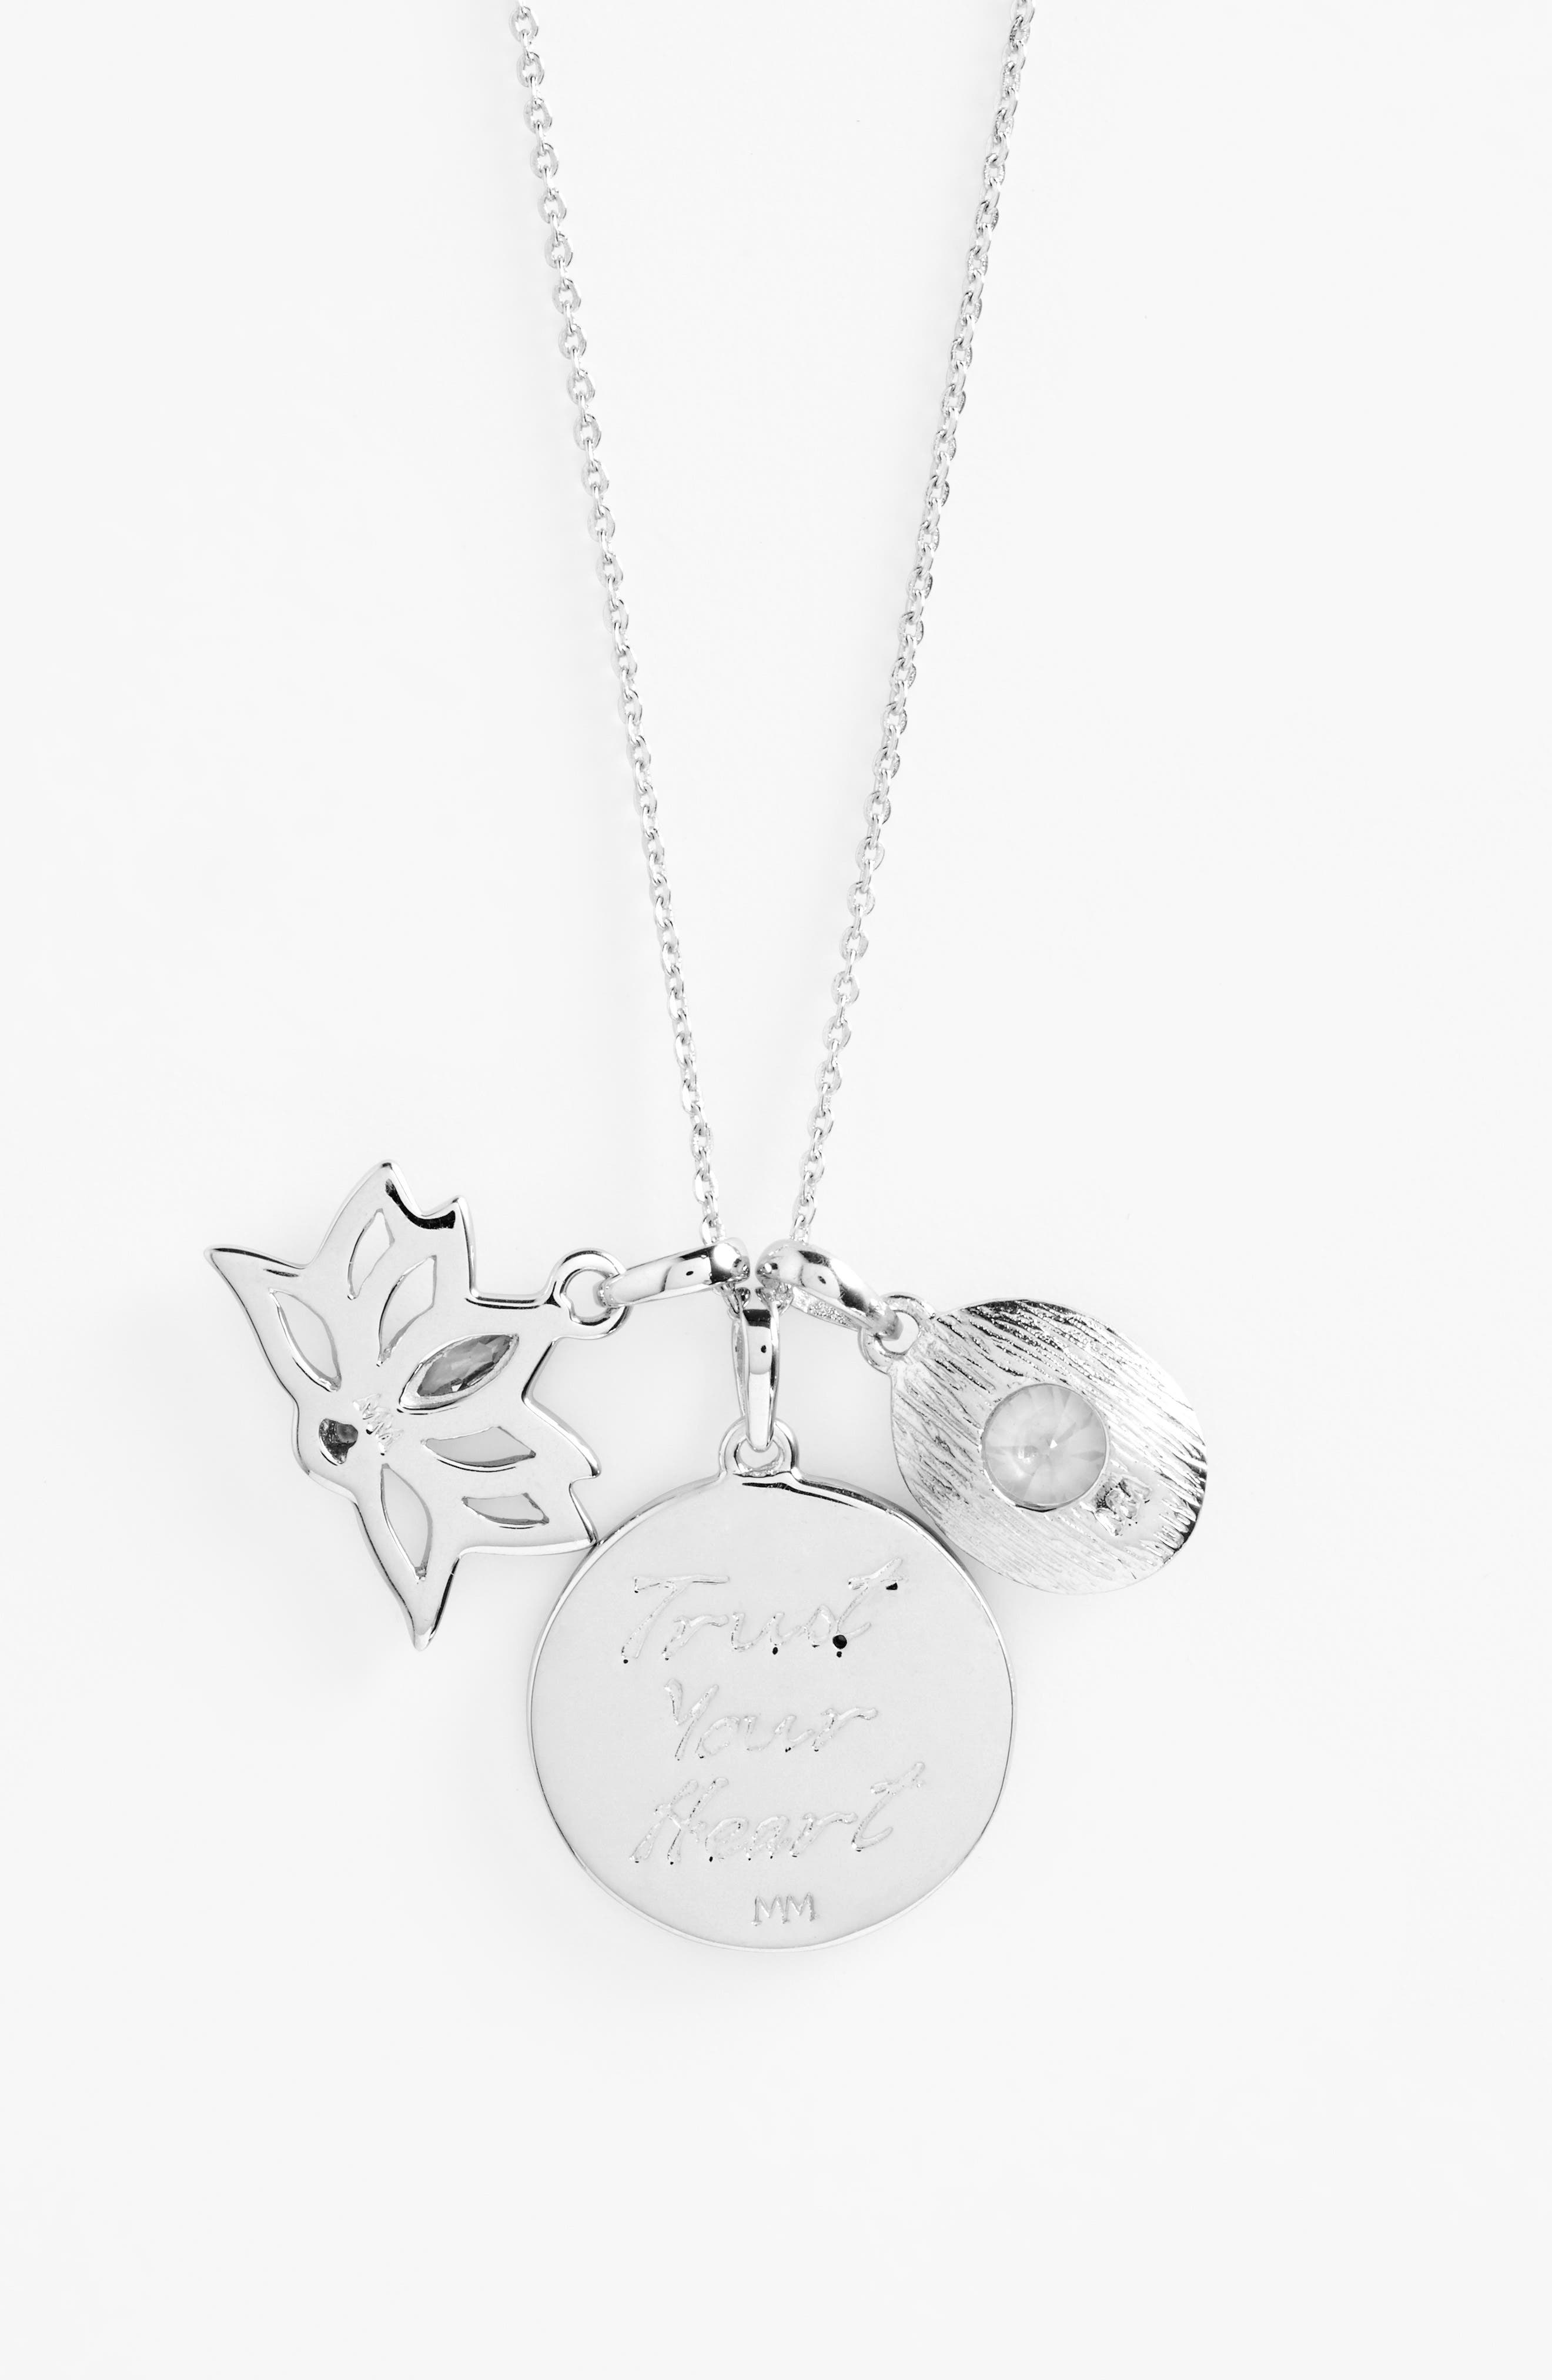 Goddess of Love Pendant Necklace,                         Main,                         color, White Cz/ Silver